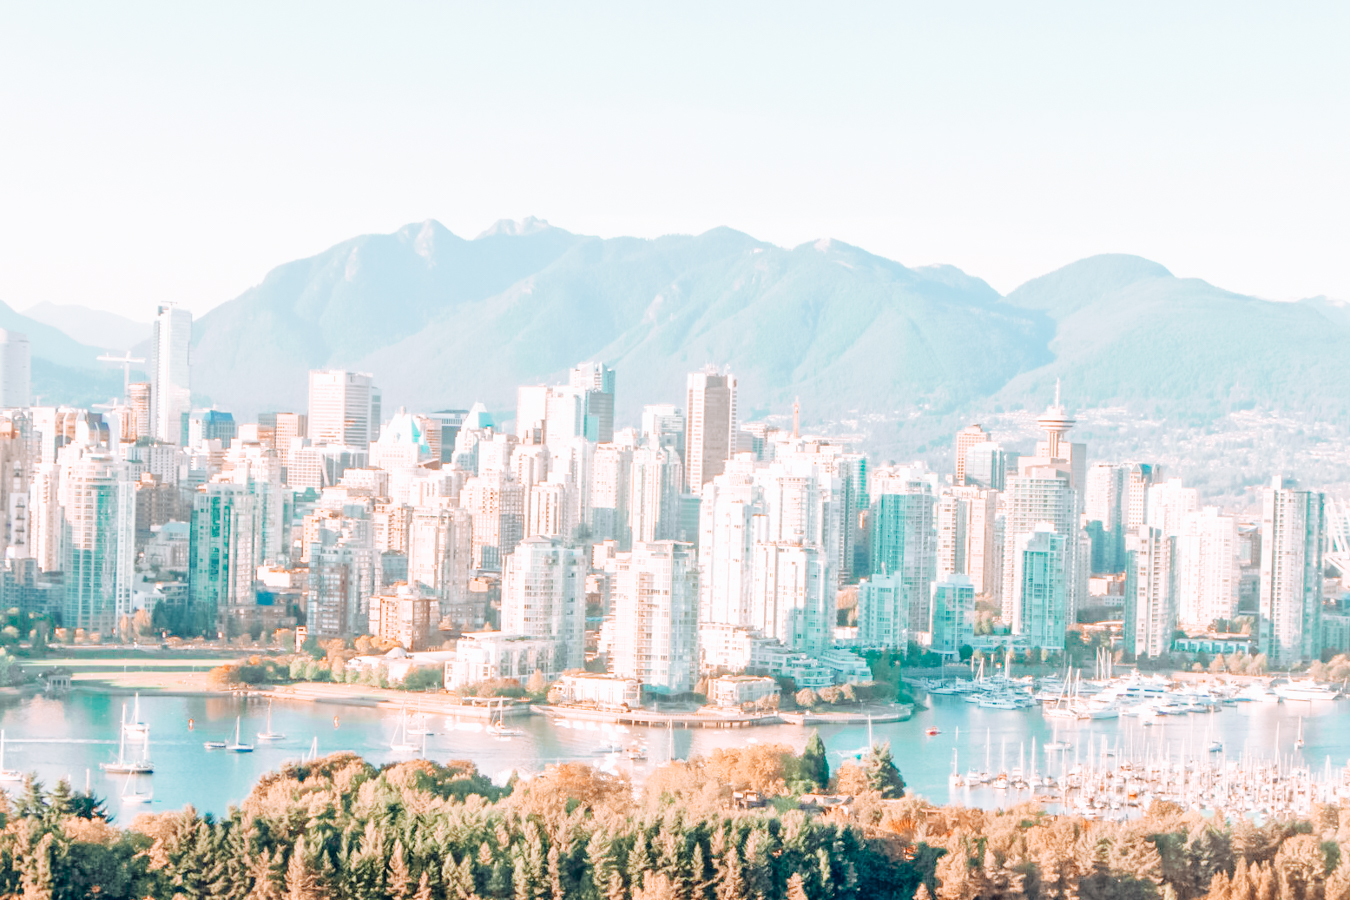 Buildings and mountains in Vancouver